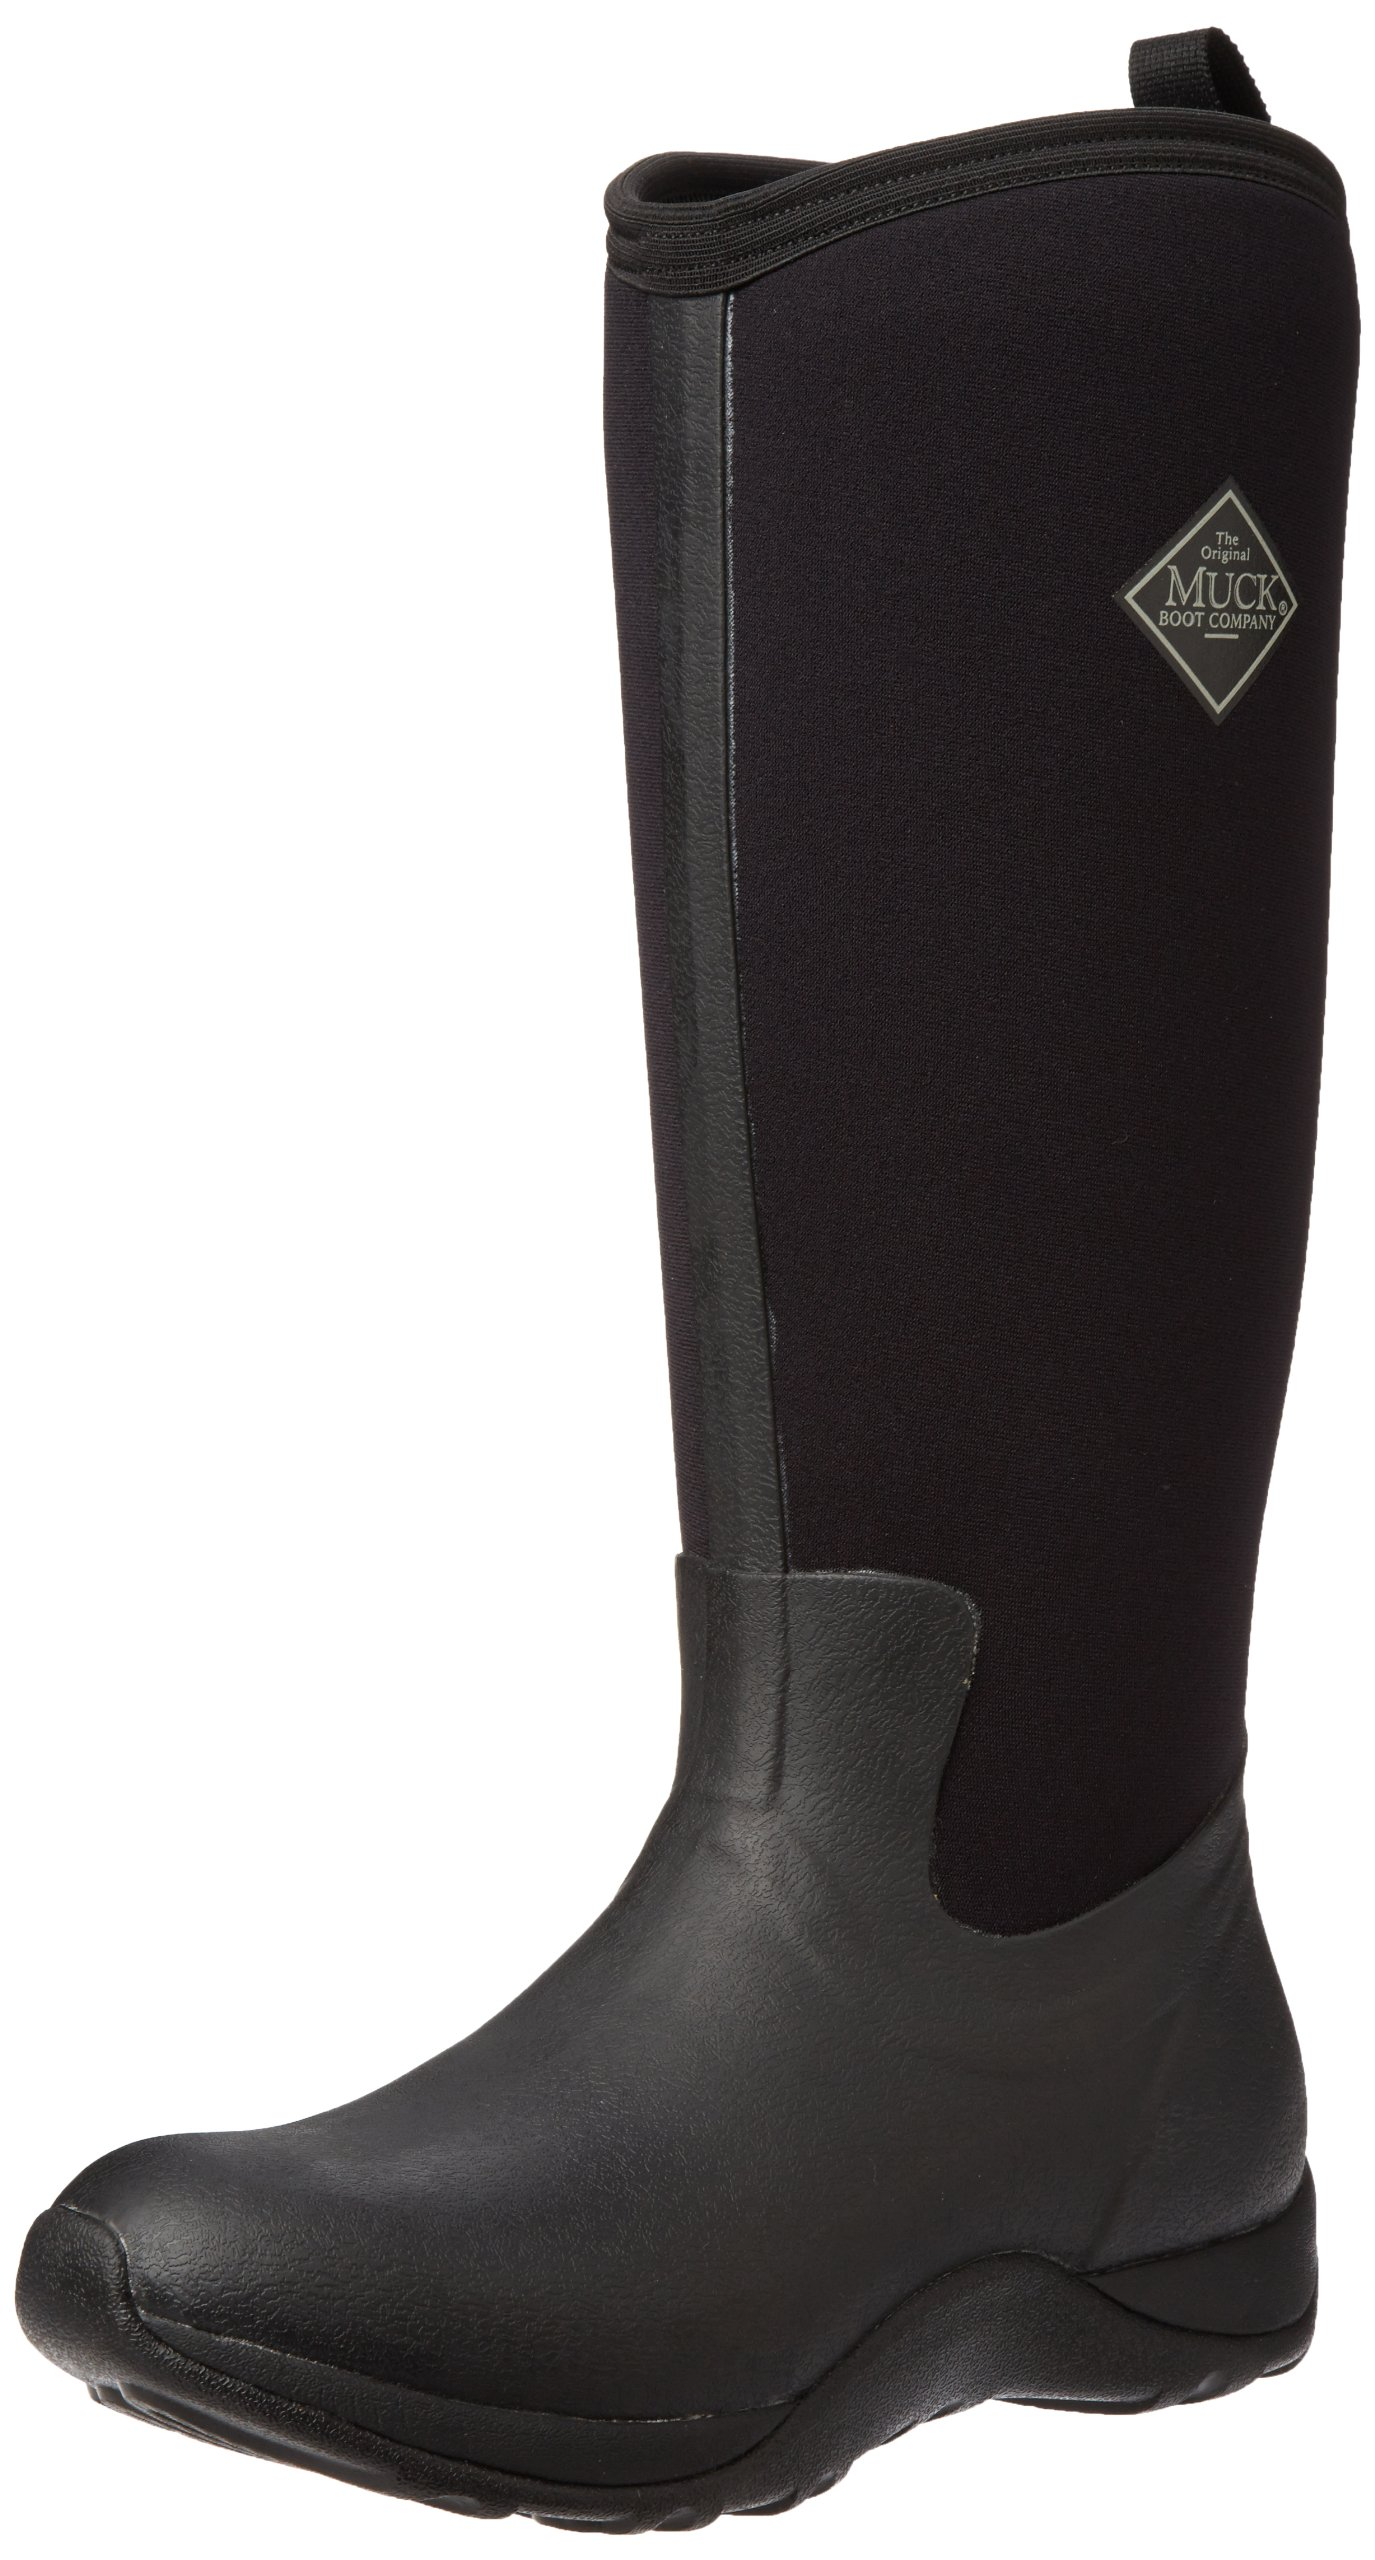 MuckBoots Women's Arctic Adventure Tall Snow Boot, Black/Black,7 M US